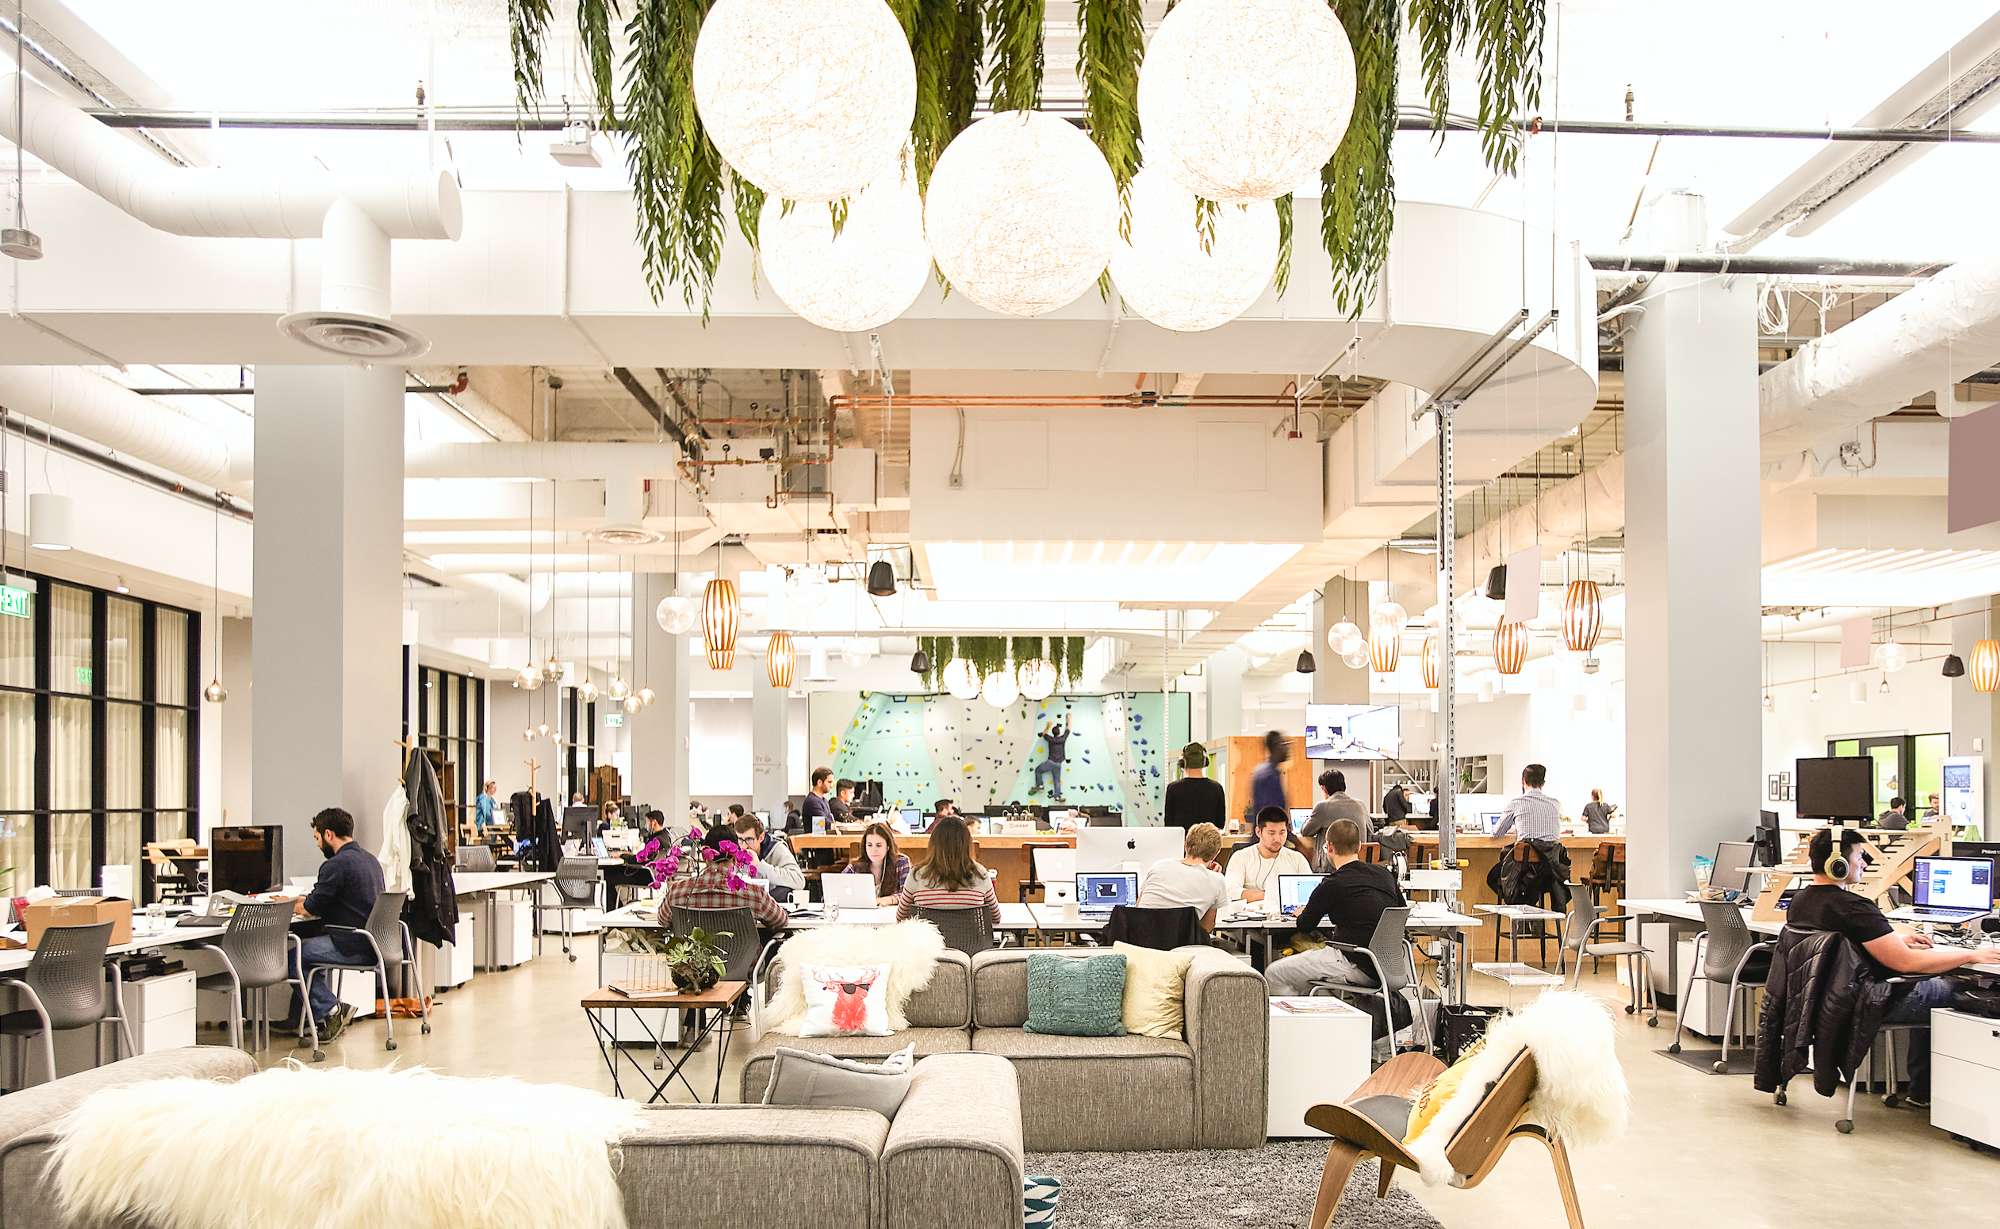 Reasons why coworking is working the startup medium